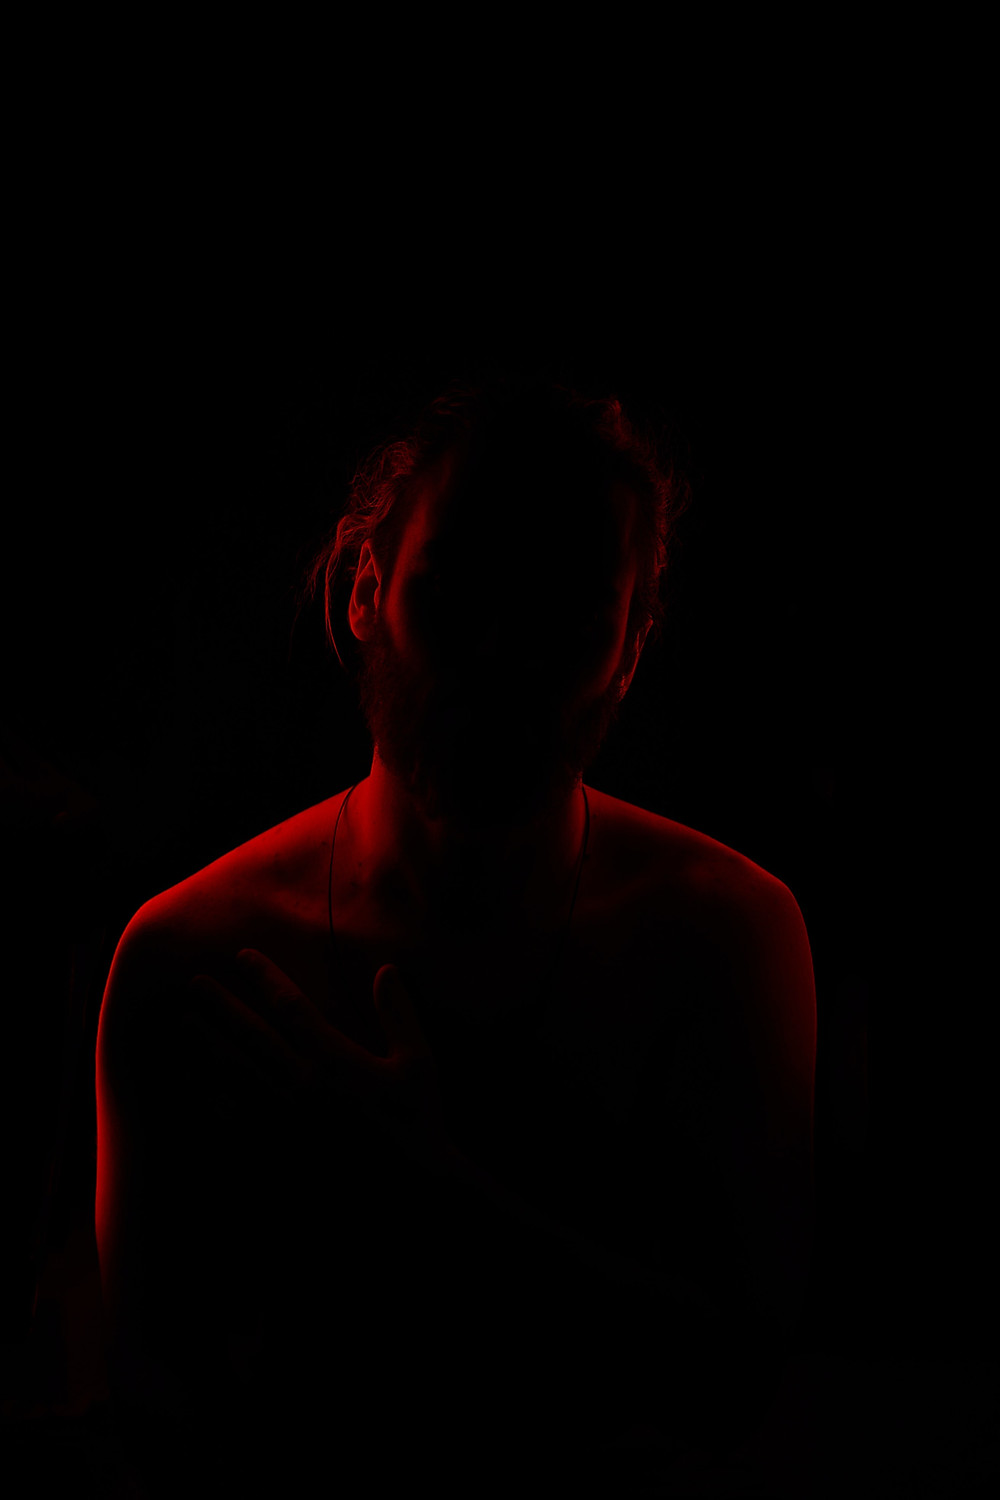 This is a red-light, dark silhouette of a shirtless male. His face is in shadow, only his shoulders are limned by backlight.